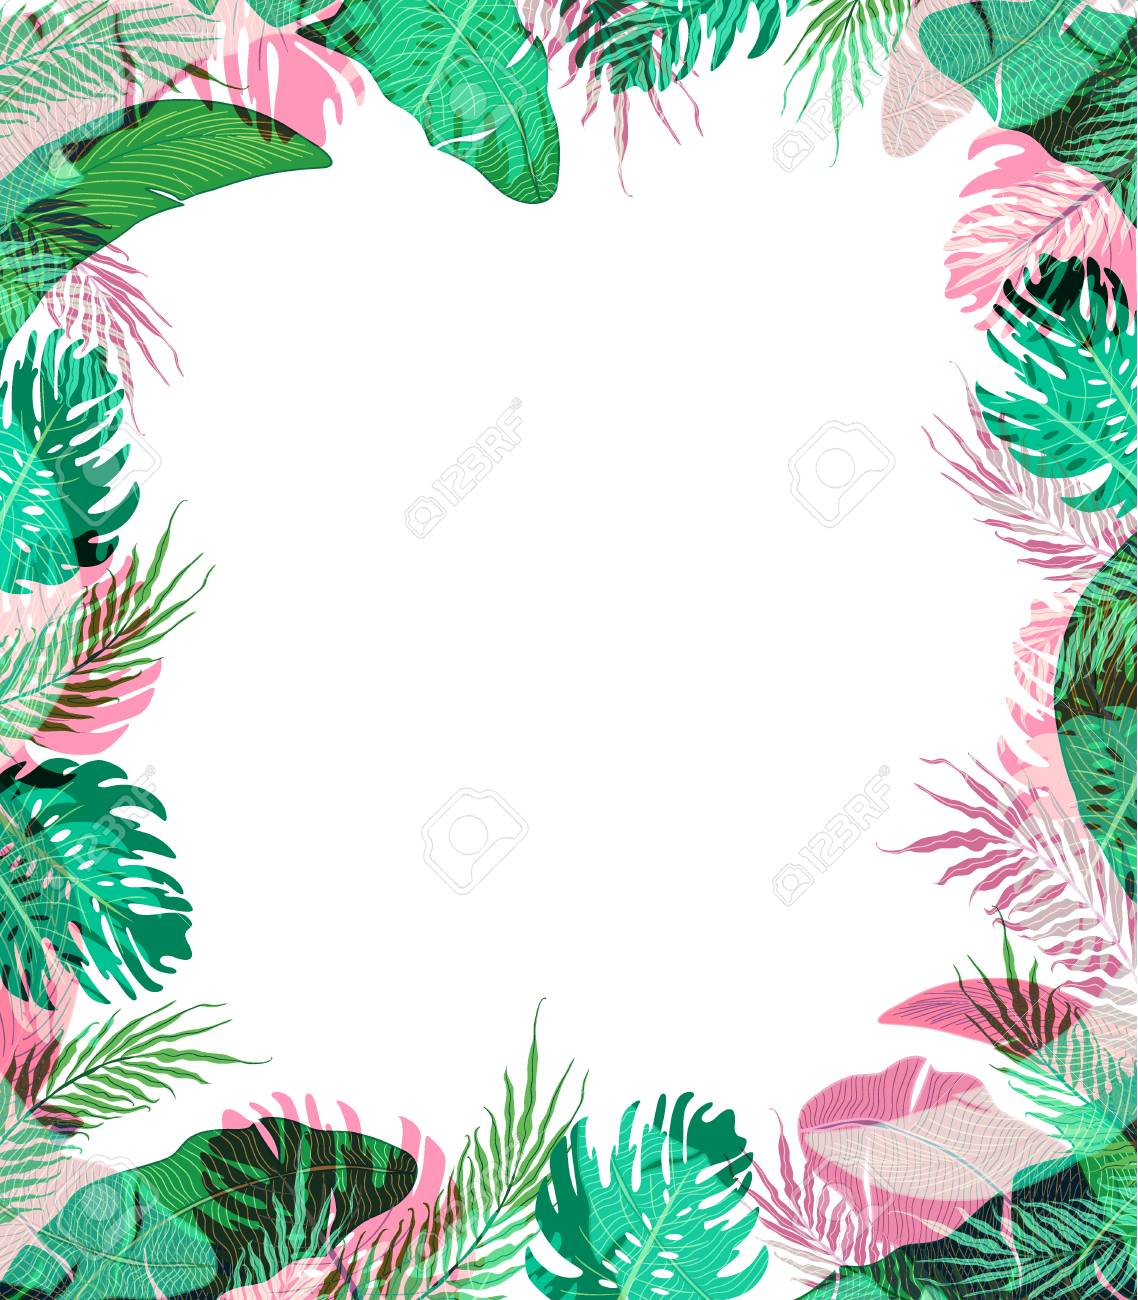 Cute Frame With Summer Tropical Leaves Stock Photo Picture And Royalty Free Image Image 81669311